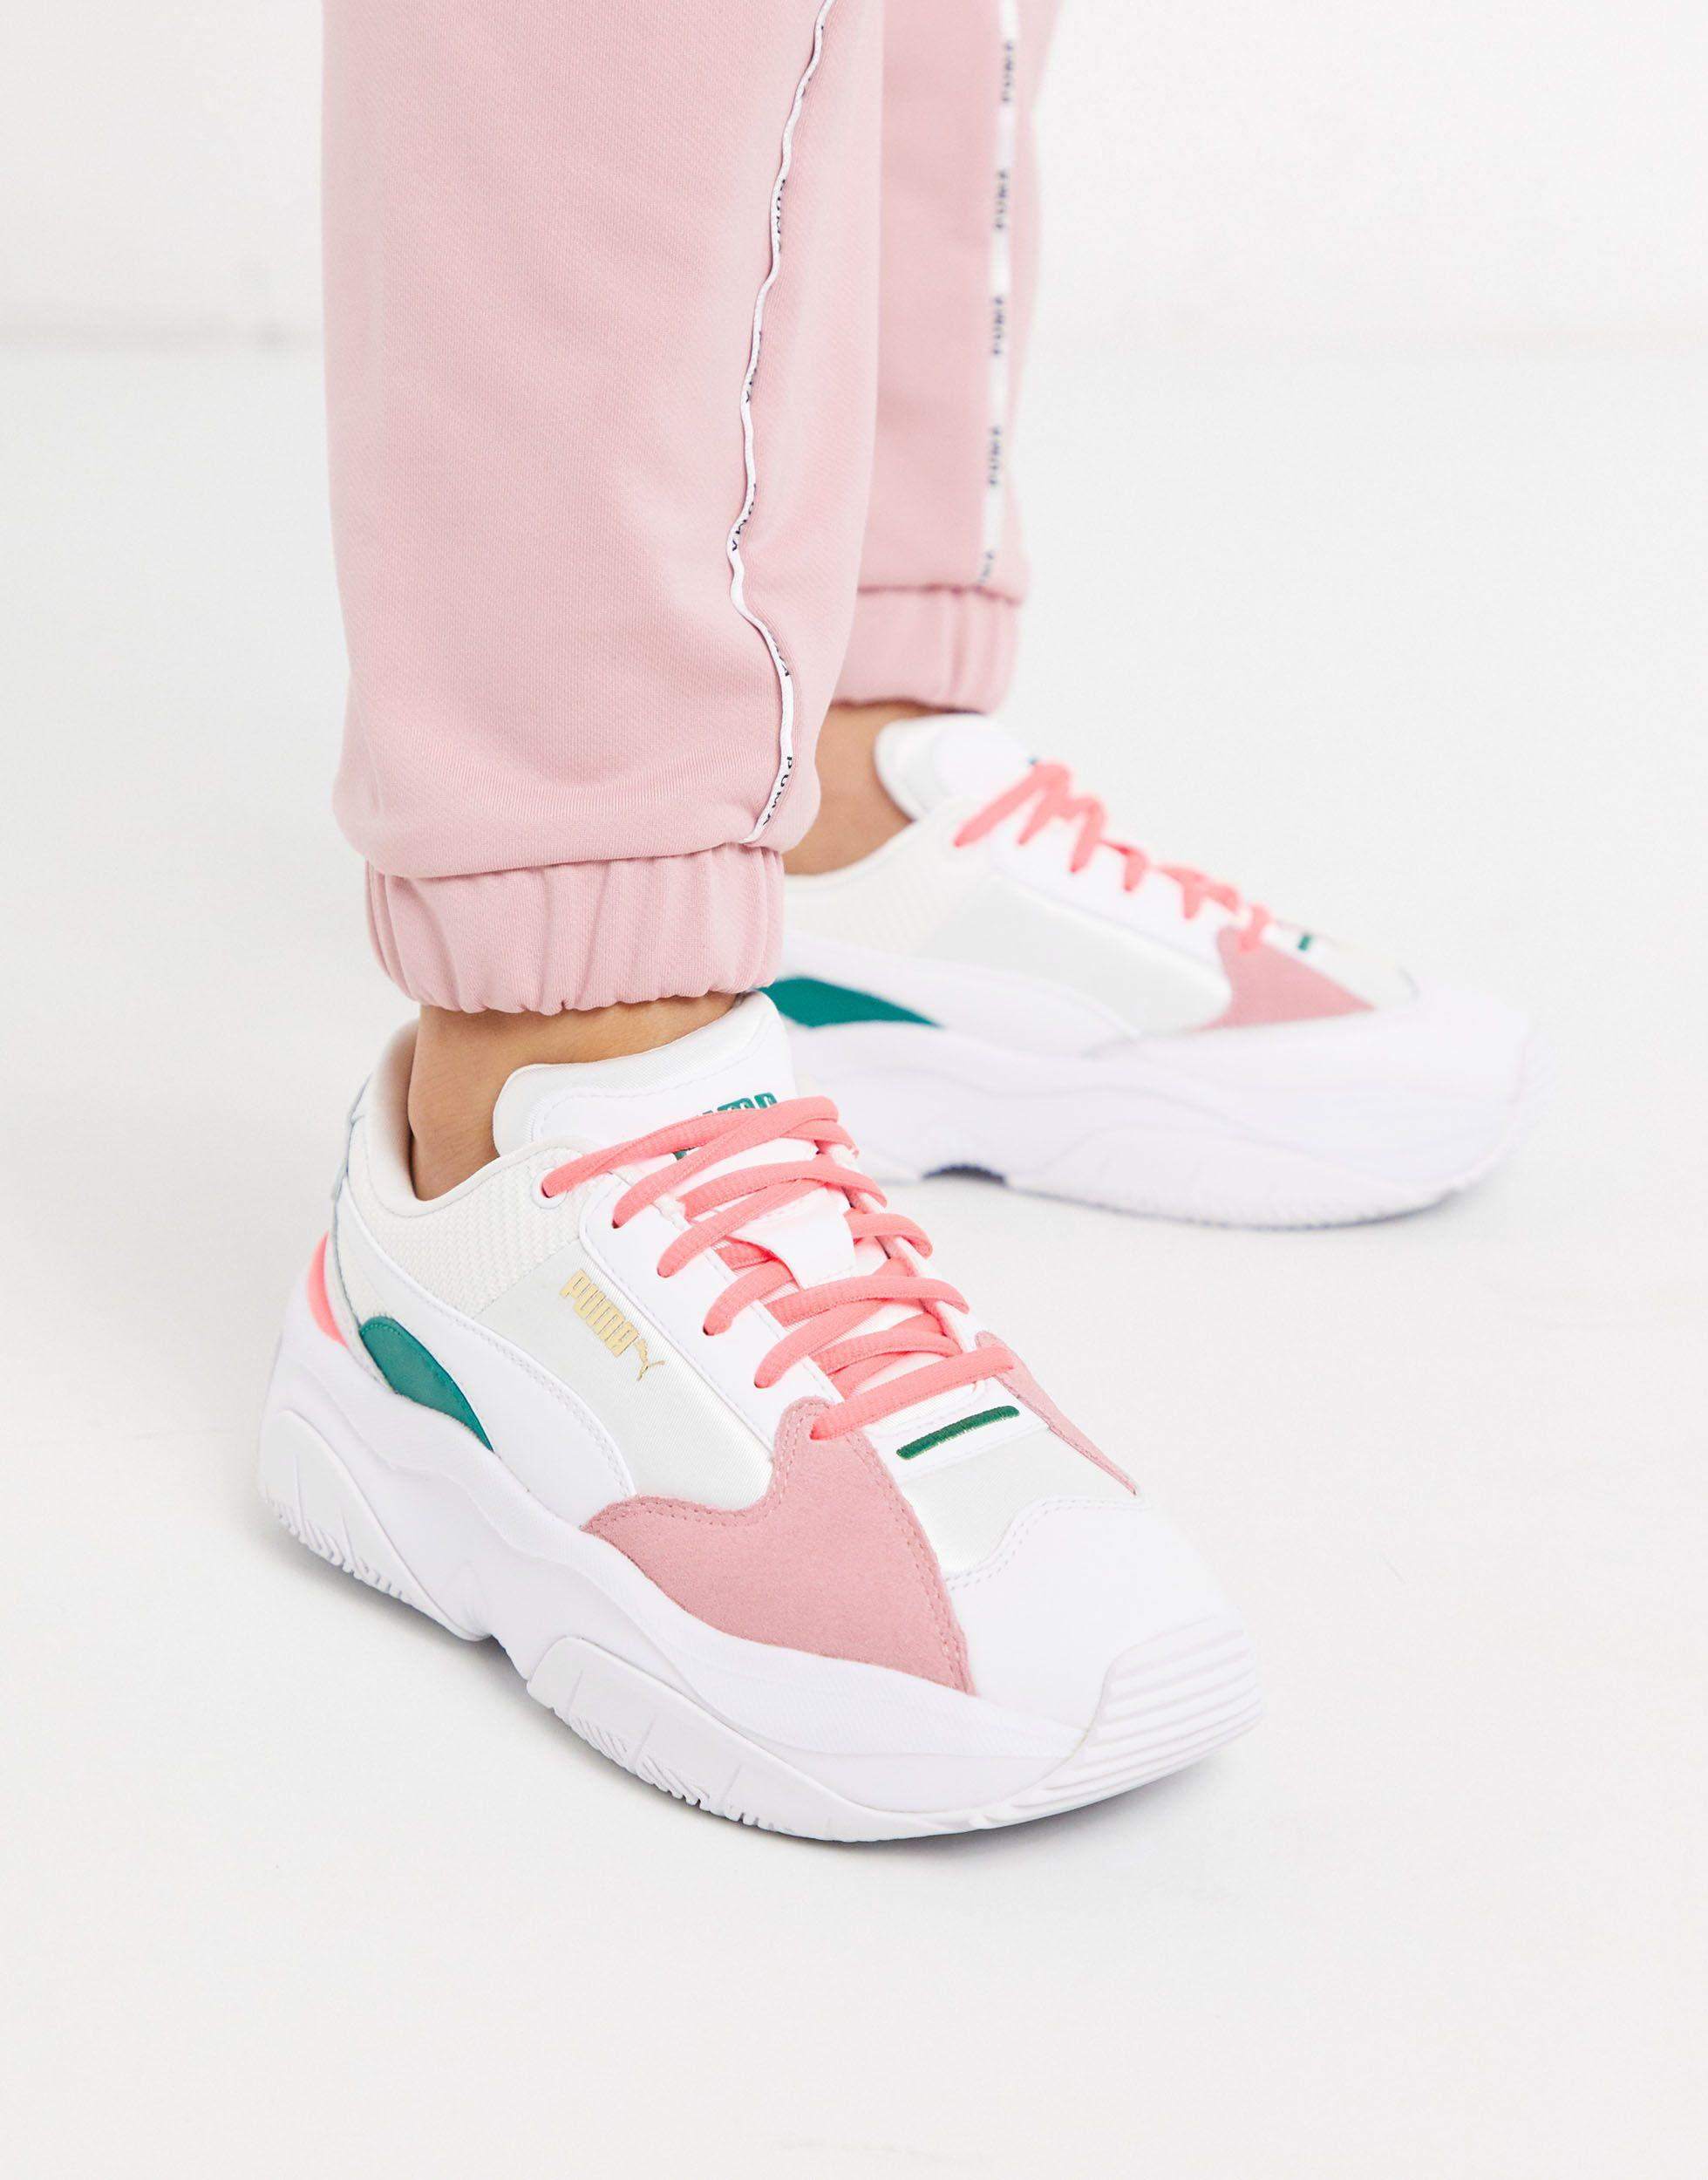 PUMA Leather Storm.y Metallic Sneakers in Gray - Lyst